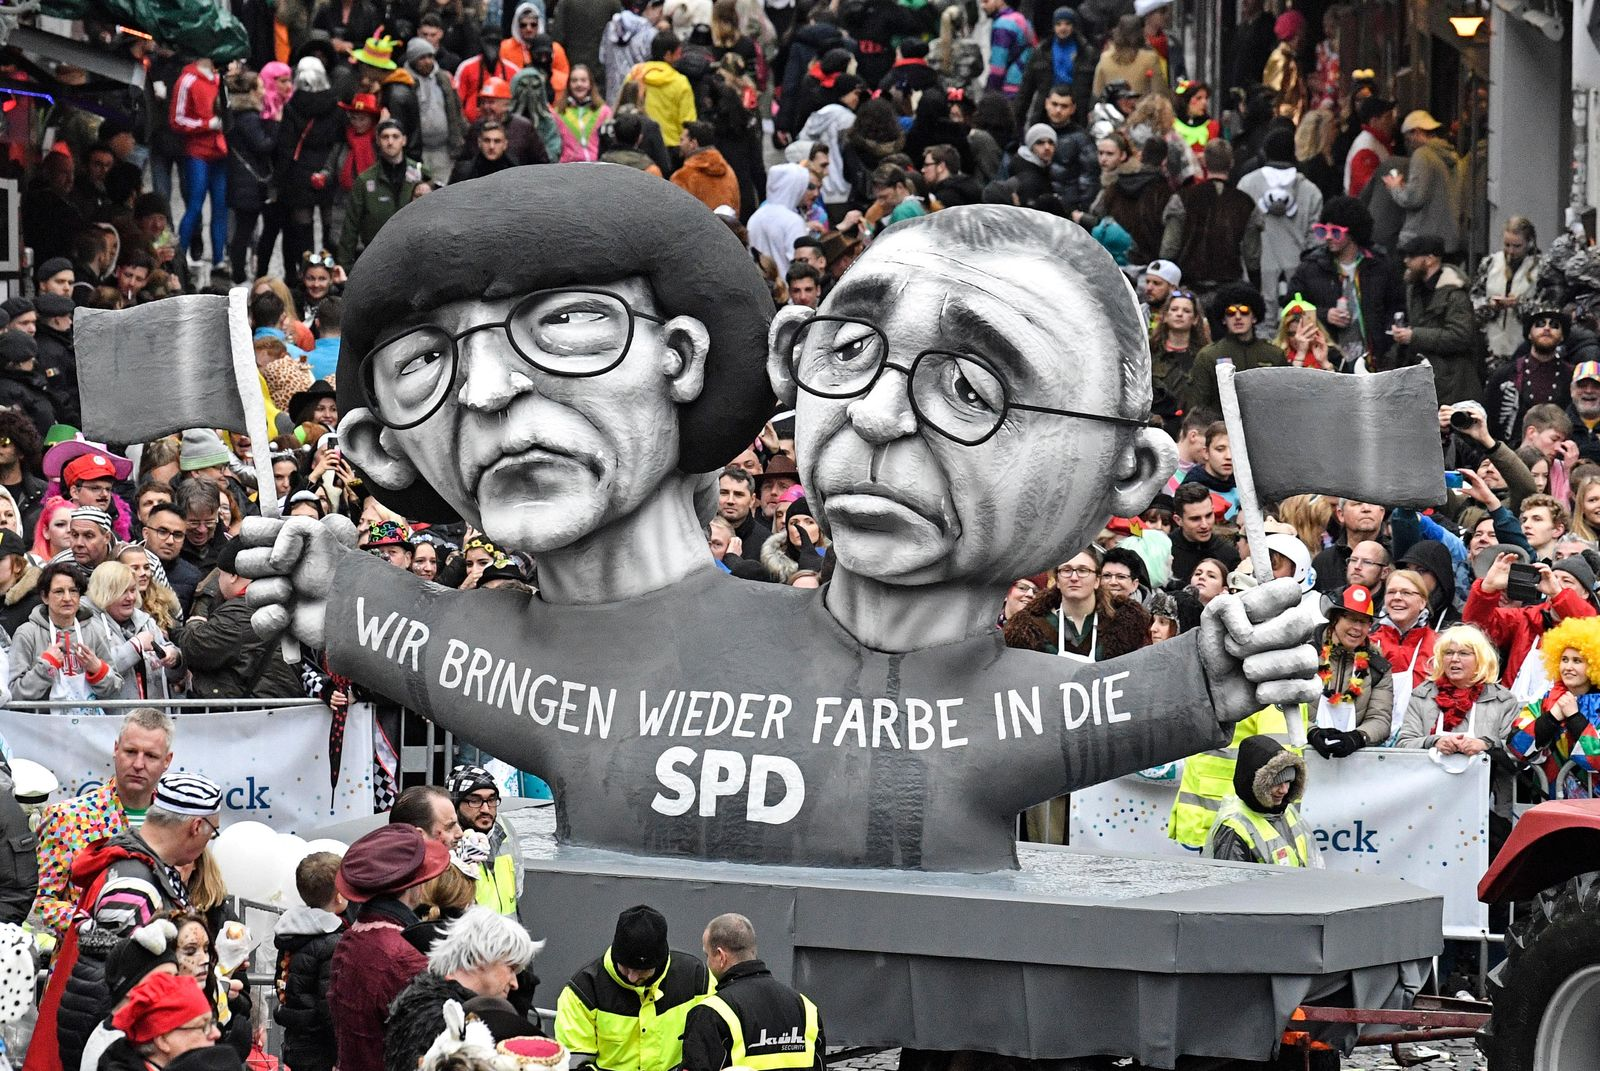 A carnival float depicts grey Social Democratc Party, SPD, leaders Saskia Esken and Norbert Walter-Borjans during the traditional carnival parade in Duesseldorf, Germany, on Monday, Feb. 24, 2020. The foolish street spectacles in the carnival centers of Duesseldorf, Mainz and Cologne, watched by hundreds of thousands of people, are the highlights in Germany's carnival season on Rosemonday. (AP Photo/Martin Meissner)